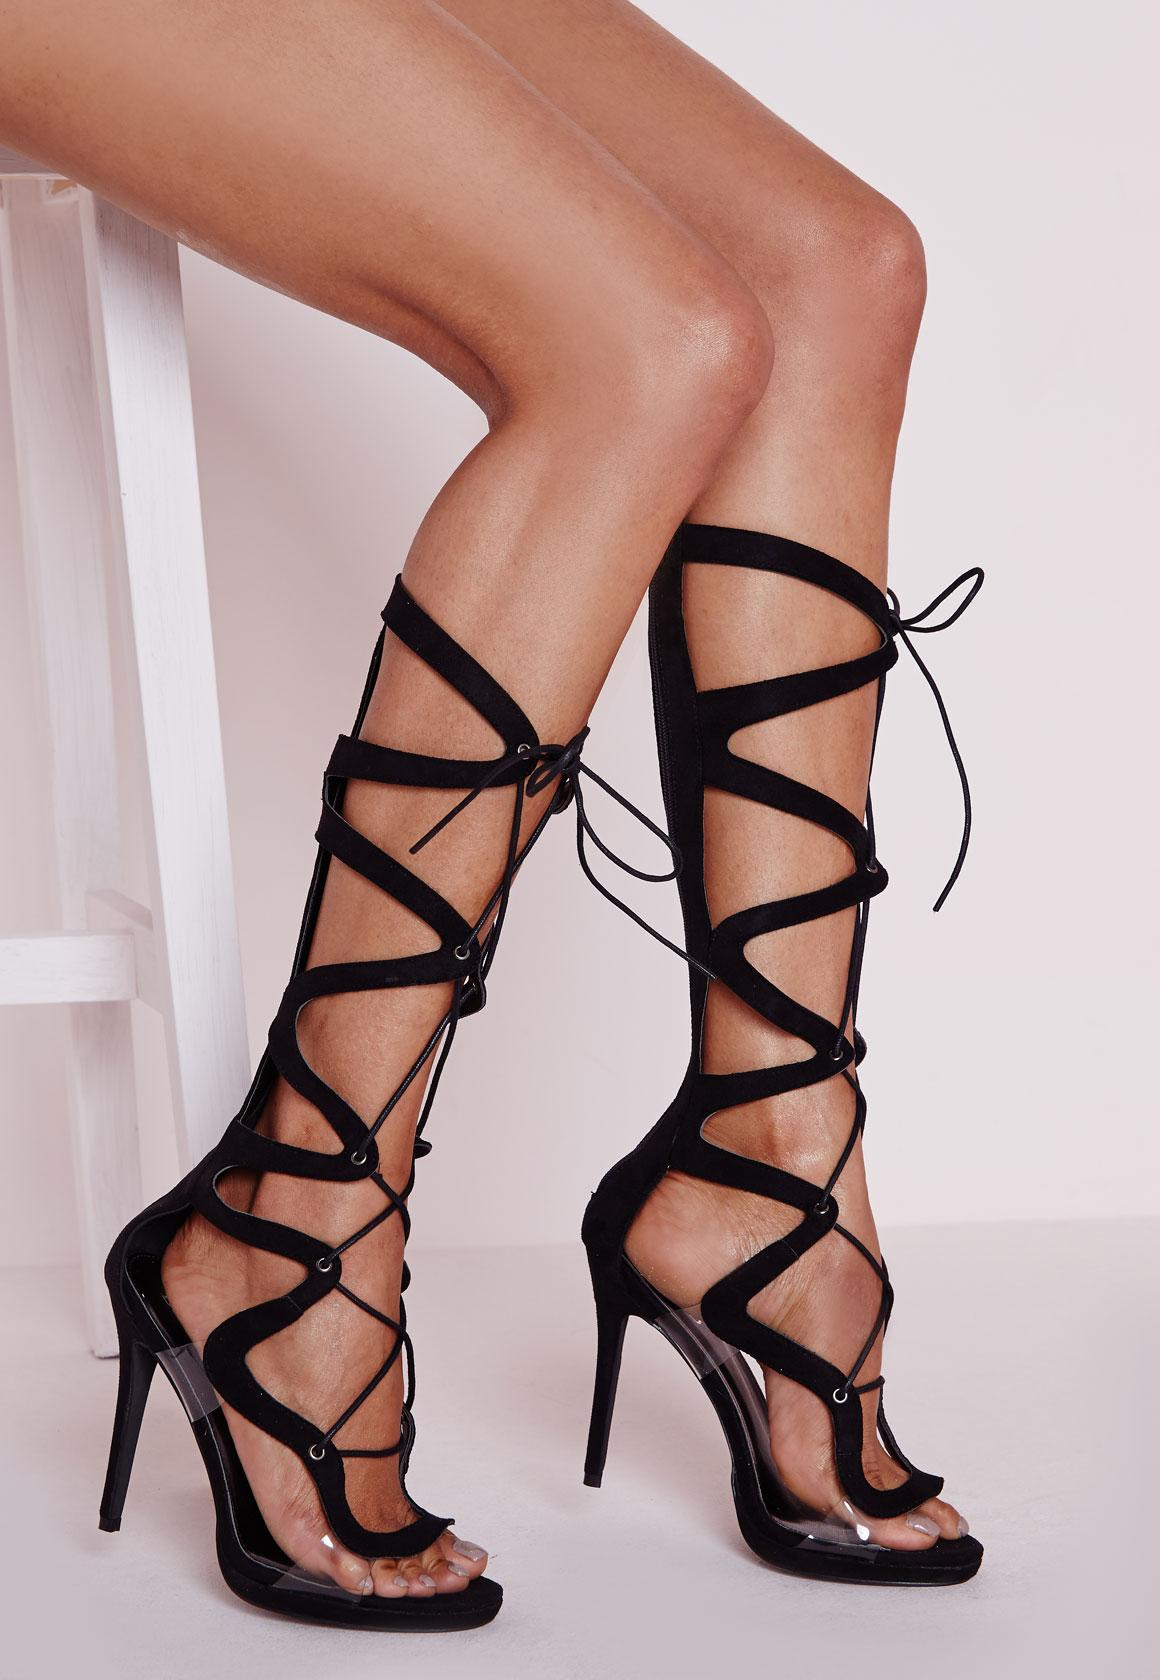 b422db42f94bad Geometric Knee High Gladiator Heeled Perspex Sandals Black .